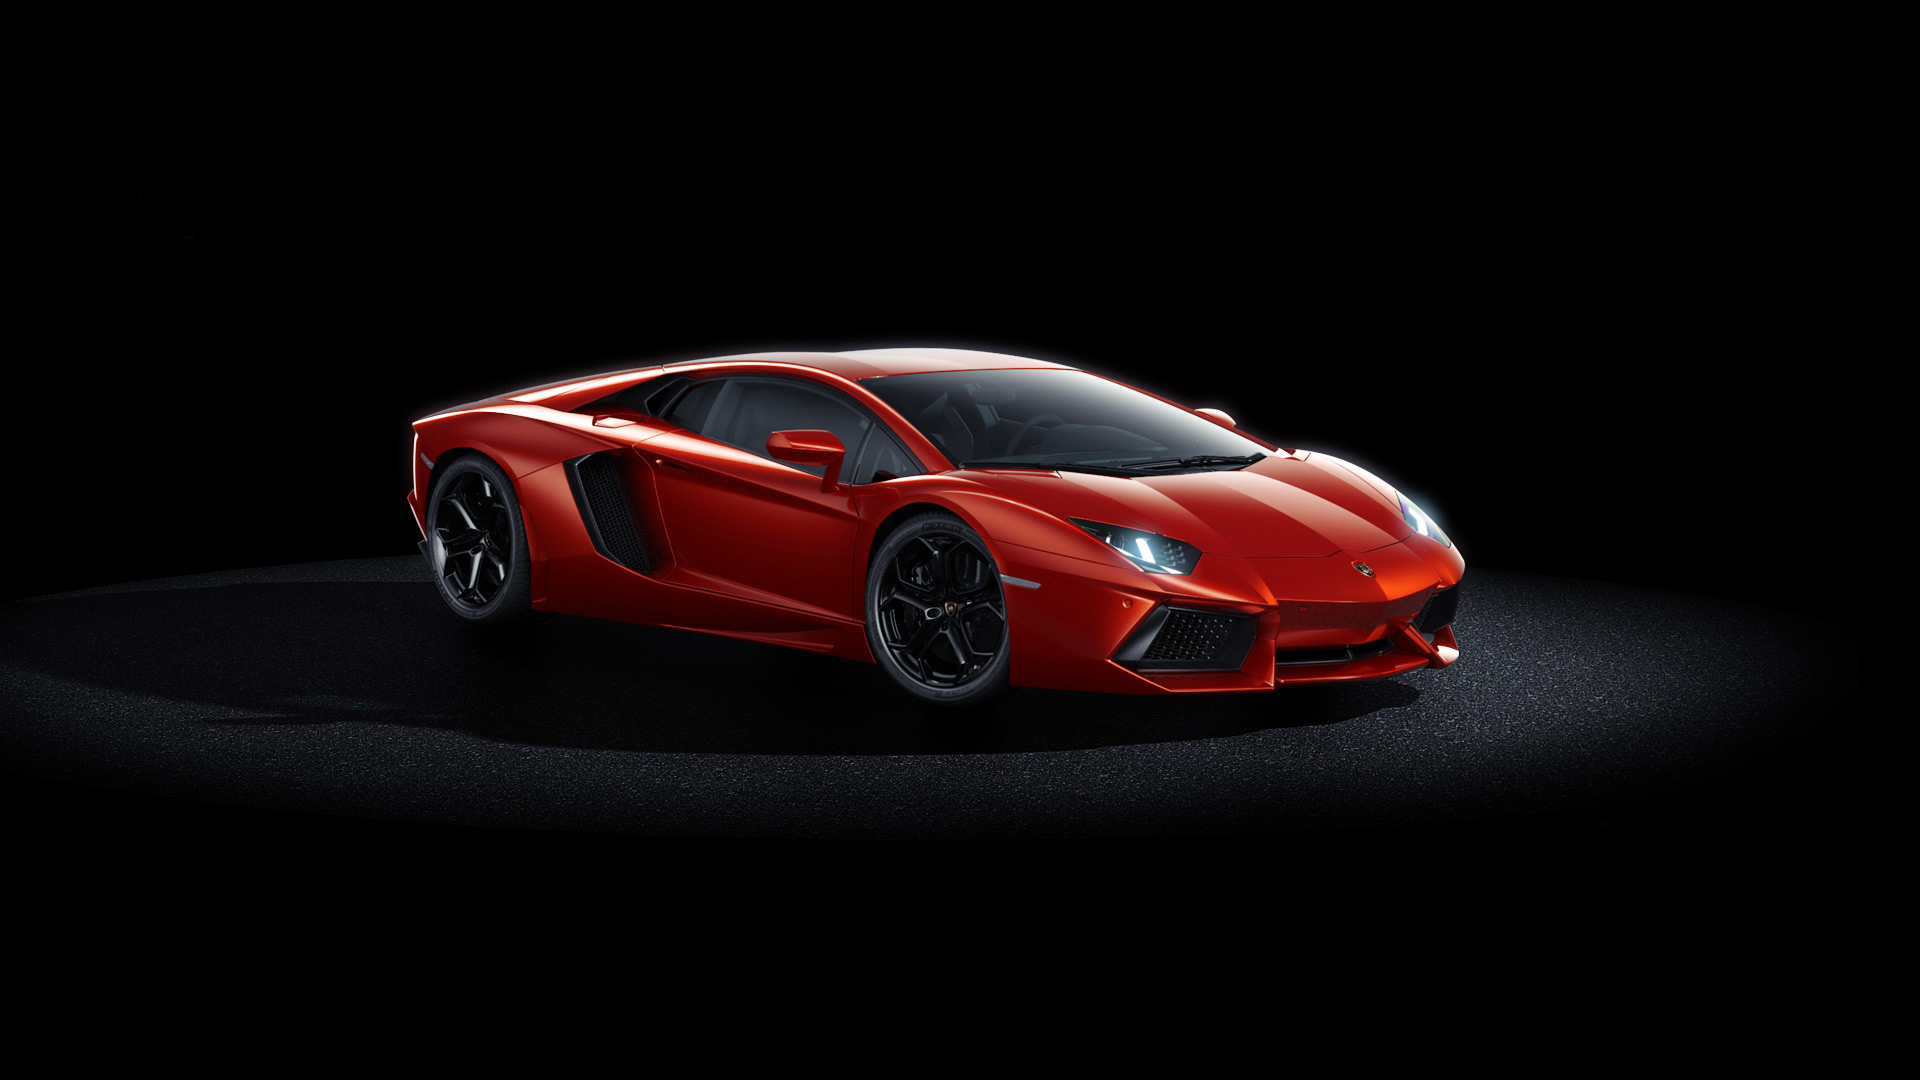 click to free download the wallpaper--Pics of Cars - Lamborghini Aventador Post in Pixel of 1920x1080, Red Super Car in Stop, Live Under Spotlight 1920X1080 free wallpaper download